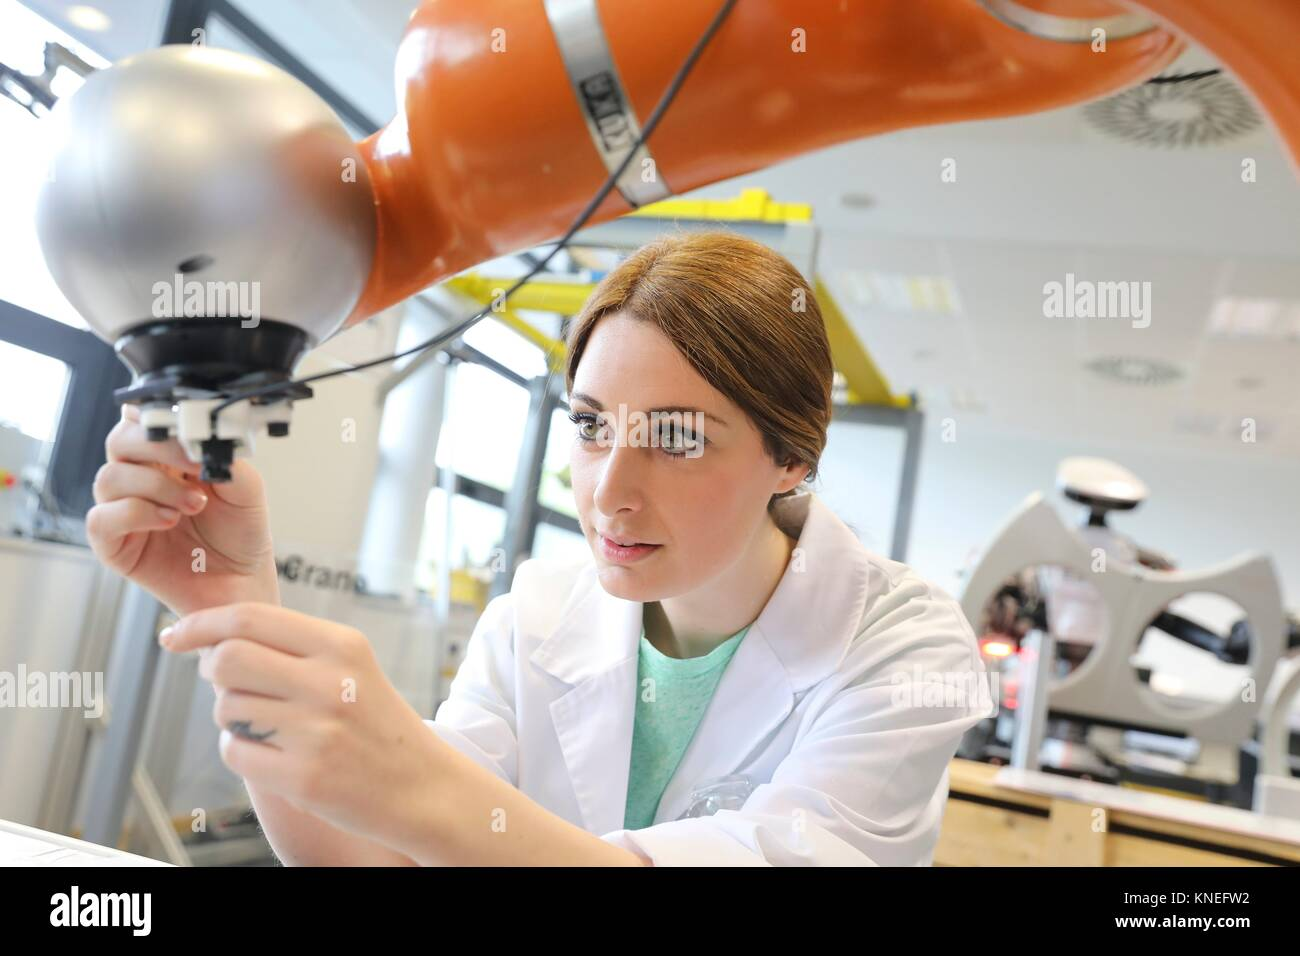 Collaborative robot for industrial assembly, LWR robot, using haptic teleoperation with force feedback Safety in - Stock Image